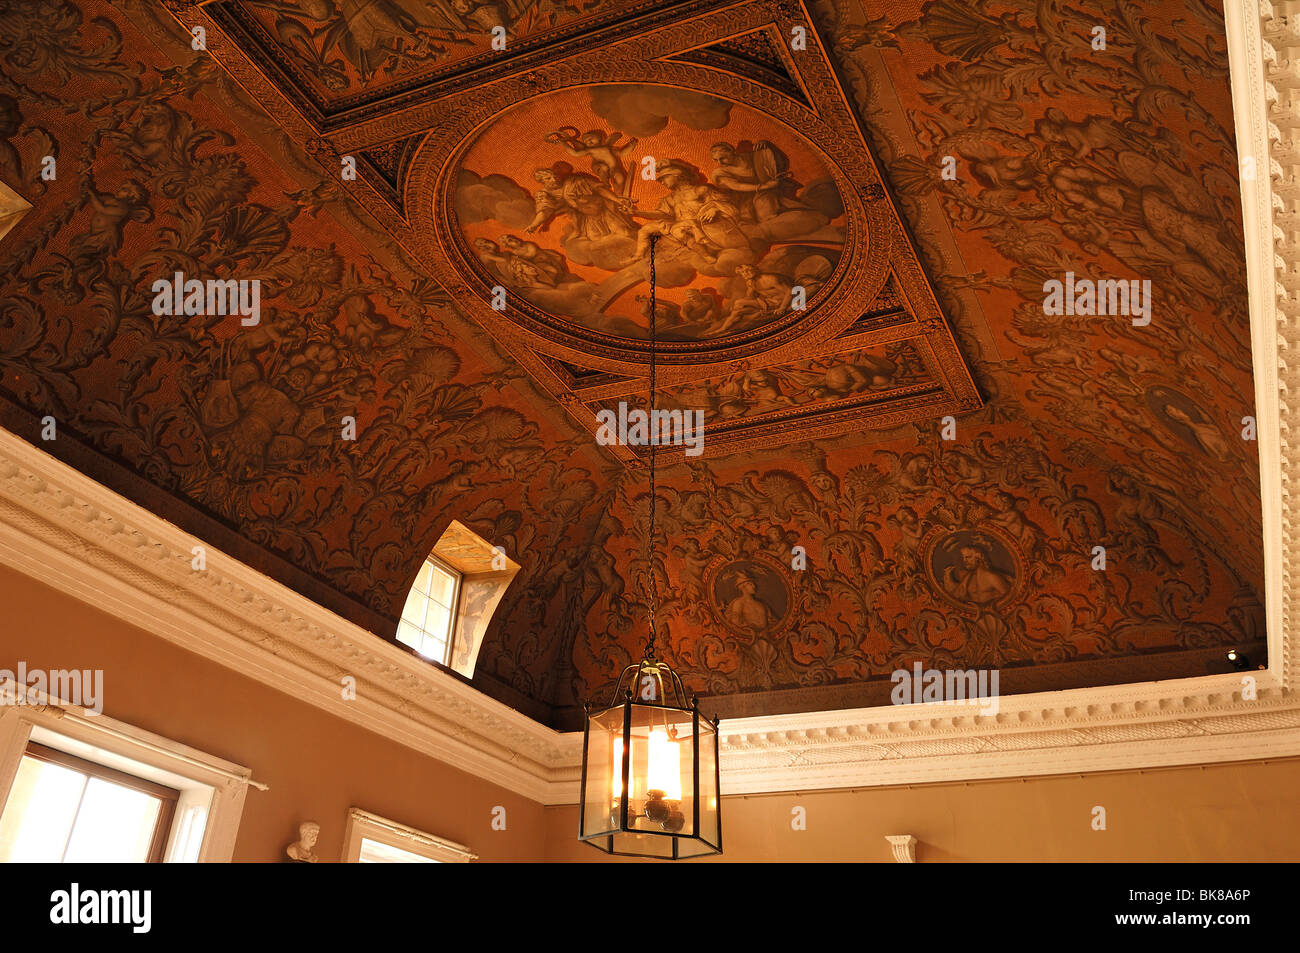 Ceiling painting in the entrance of Stowe School, private school since 1923, architecture from 1770, Classicism, Stock Photo